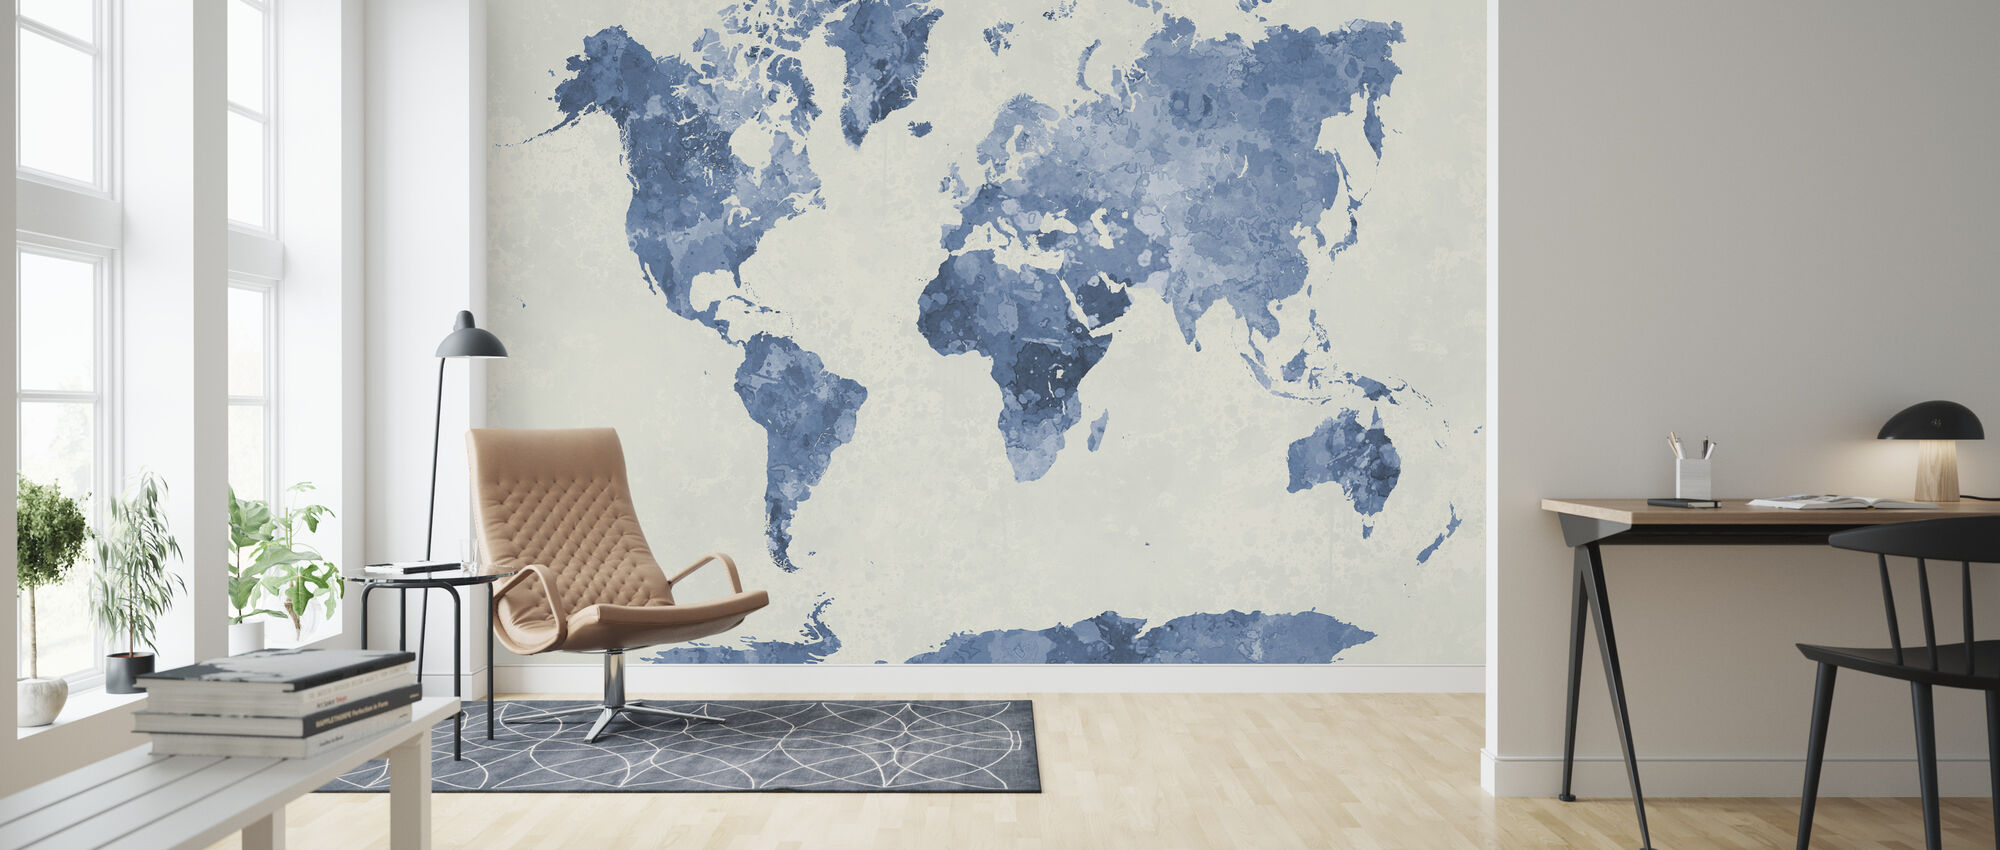 Blue World in Watercolor - Wallpaper - Living Room